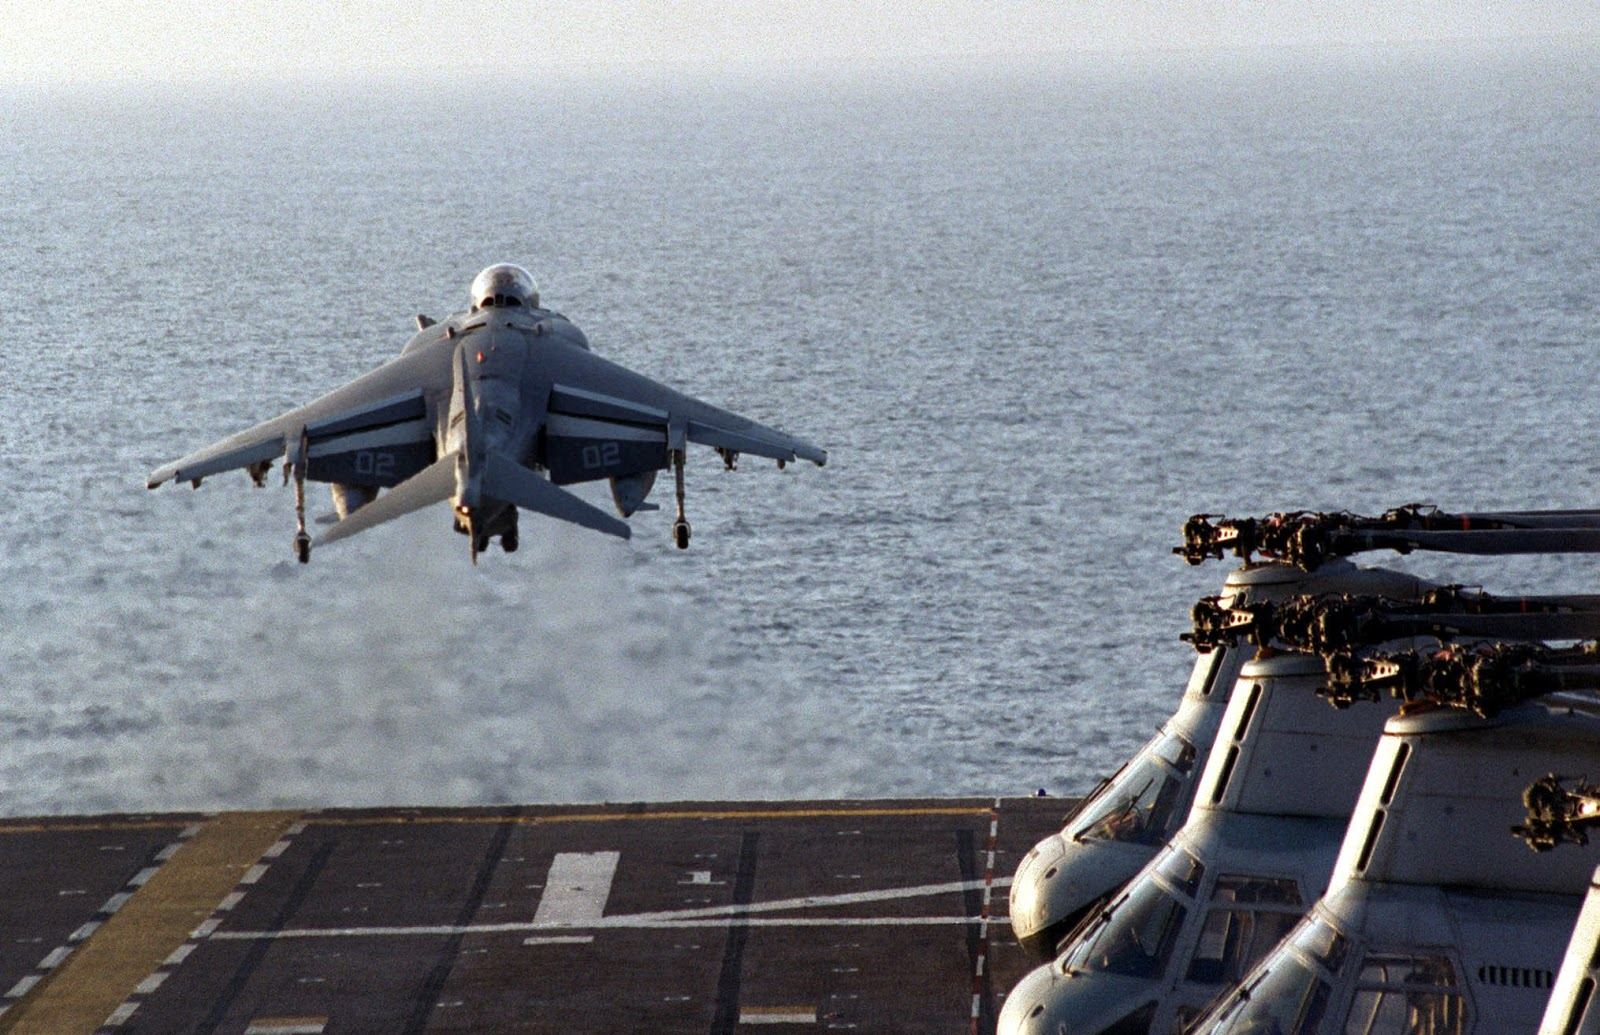 Harrier Carrier Vertical Take-off